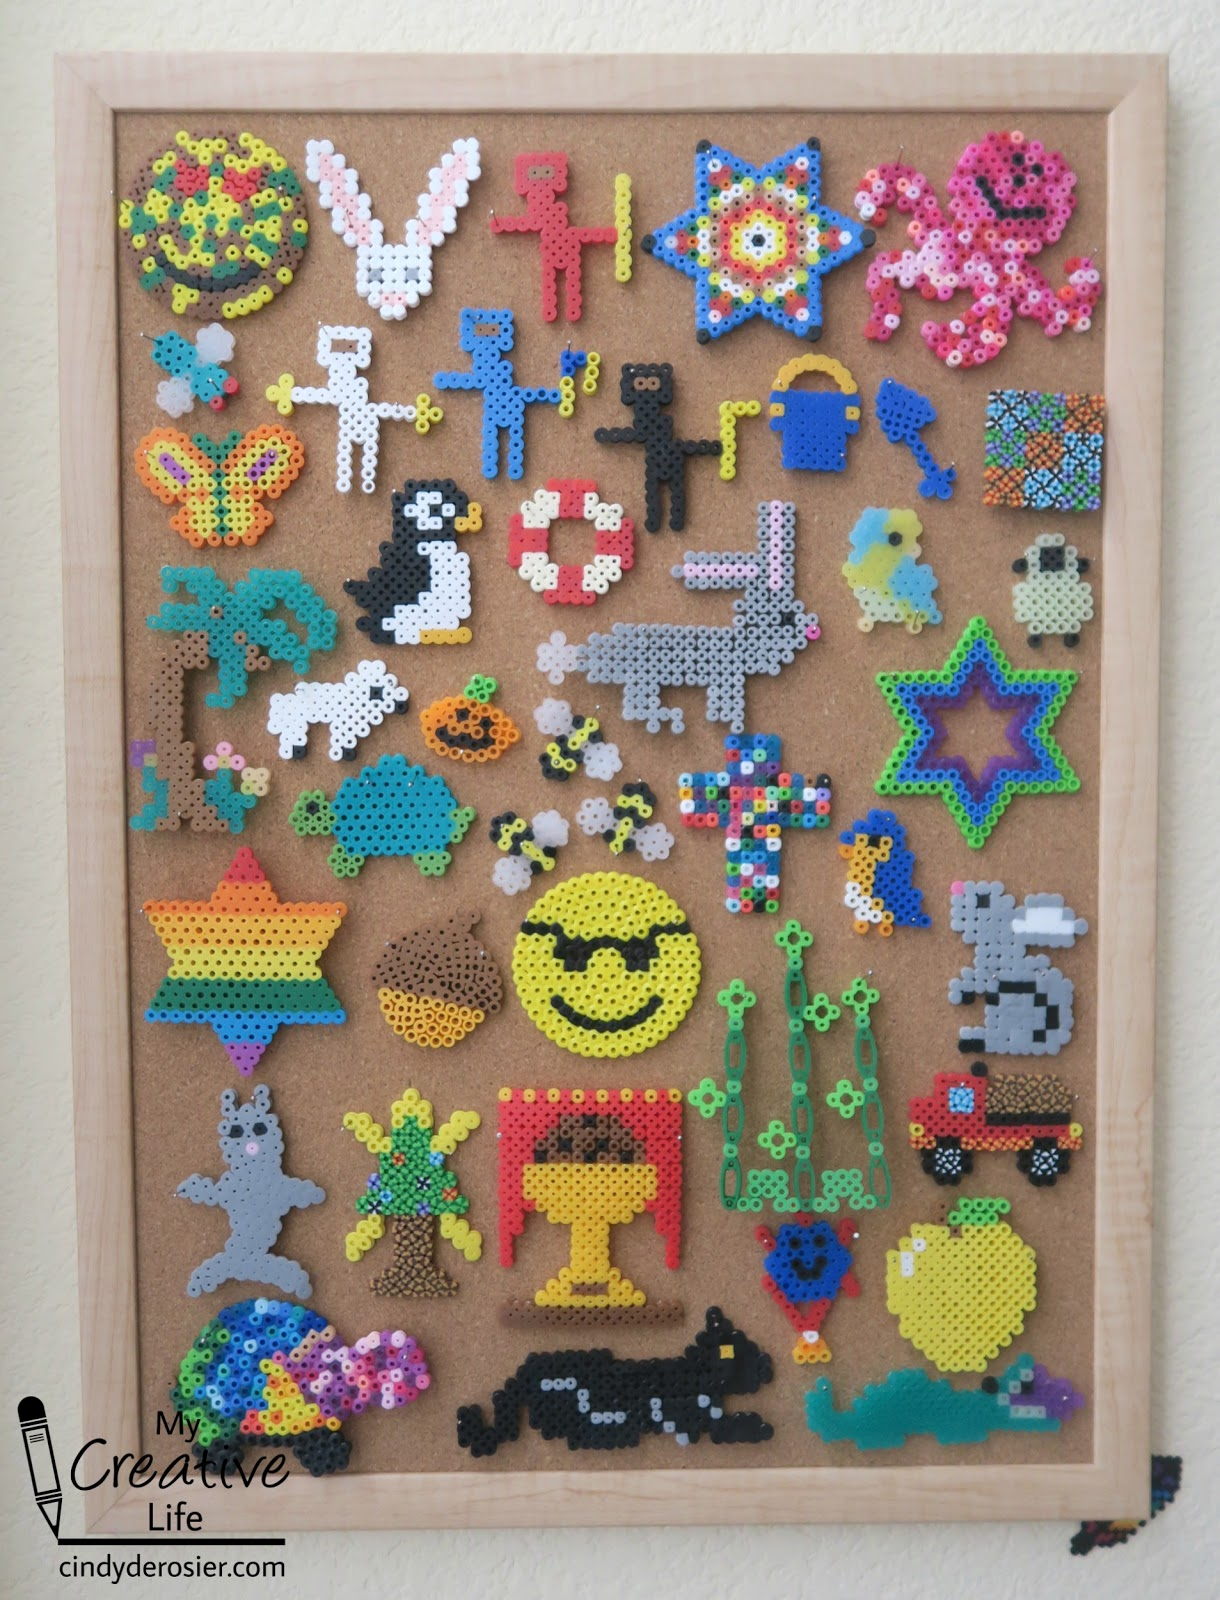 Cindy deRosier: My Creative Life: Displaying Perler Bead